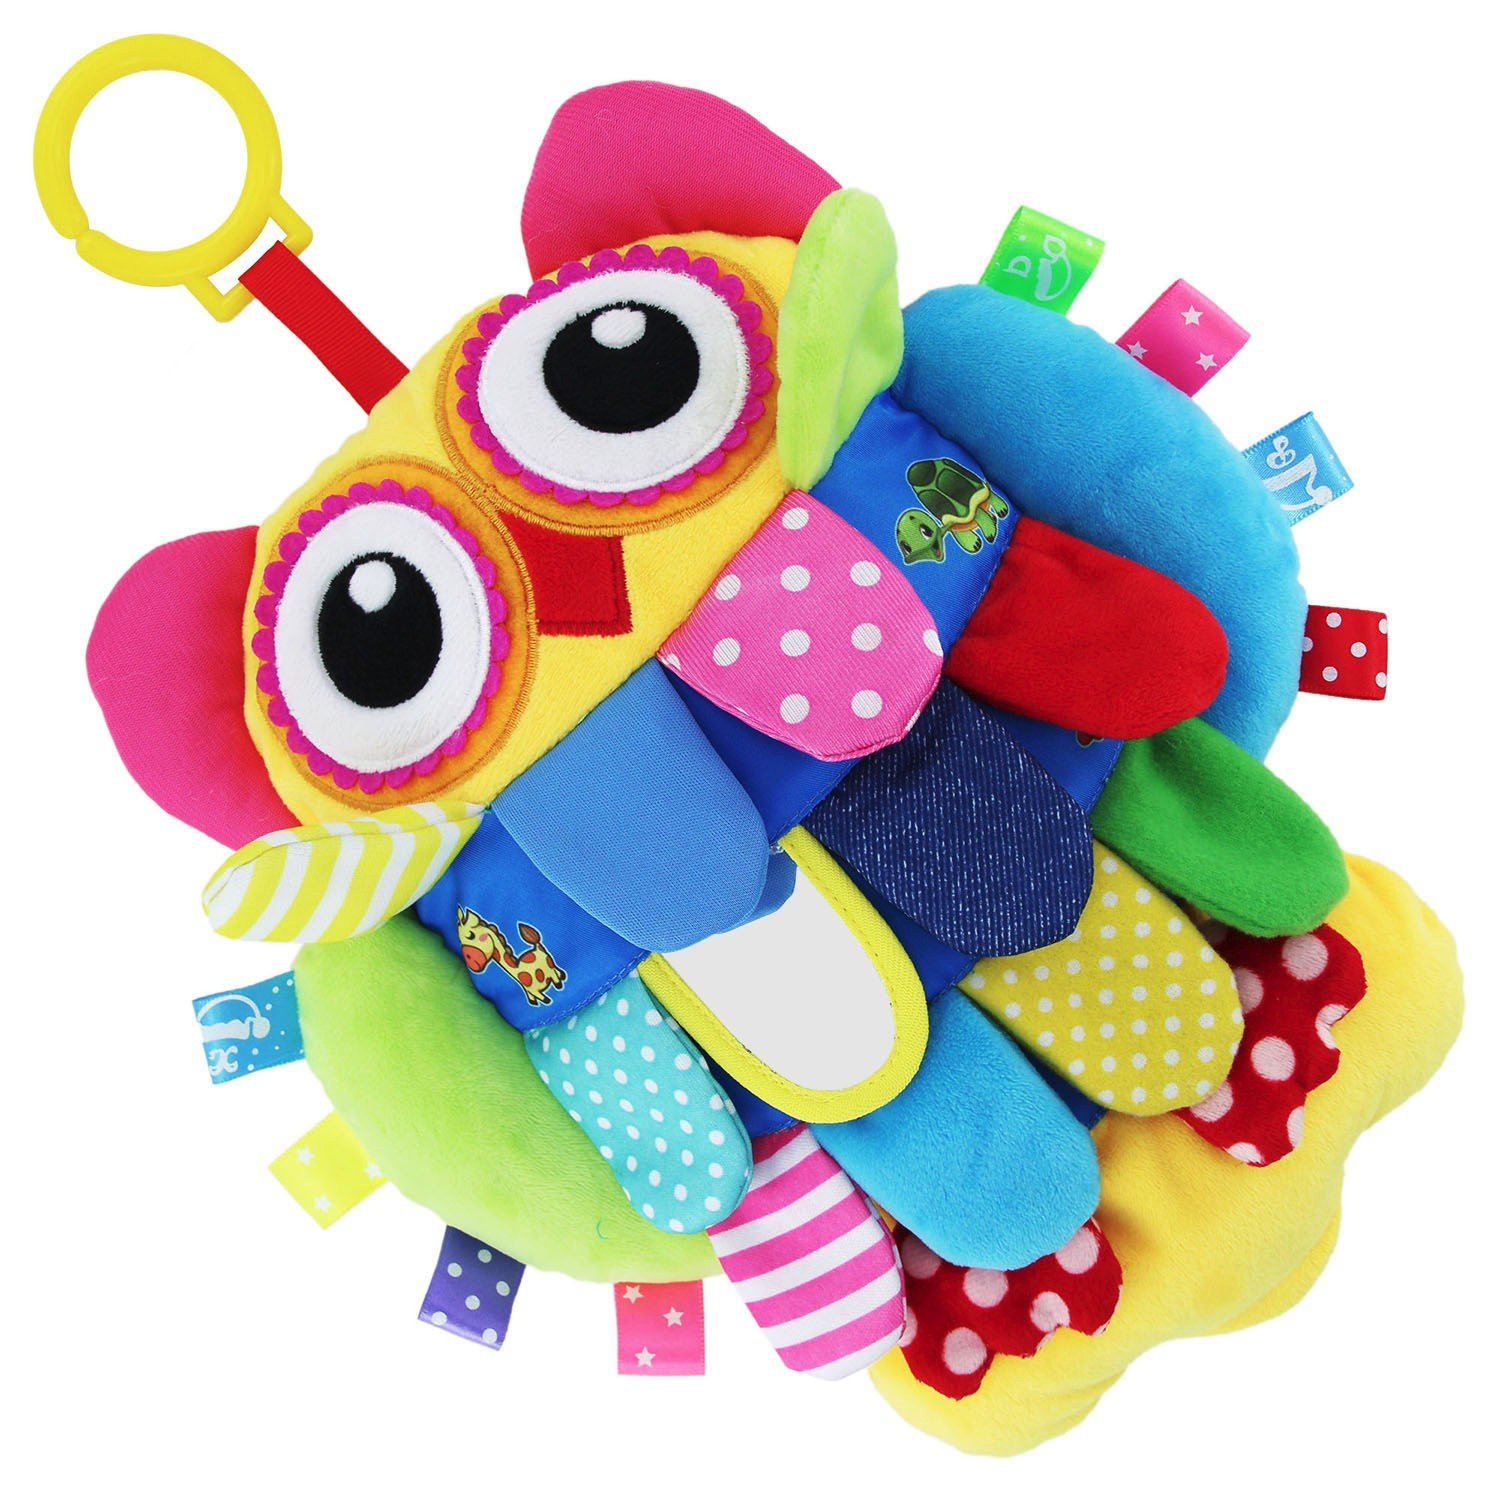 My First Soft Baby Toy,TEYTOY Nontoxic Fabric Flip Owl Early Education Toys Activity Crinkle Cloth Baby Toys for Toddler, Infants and Kids Perfect for Baby Shower